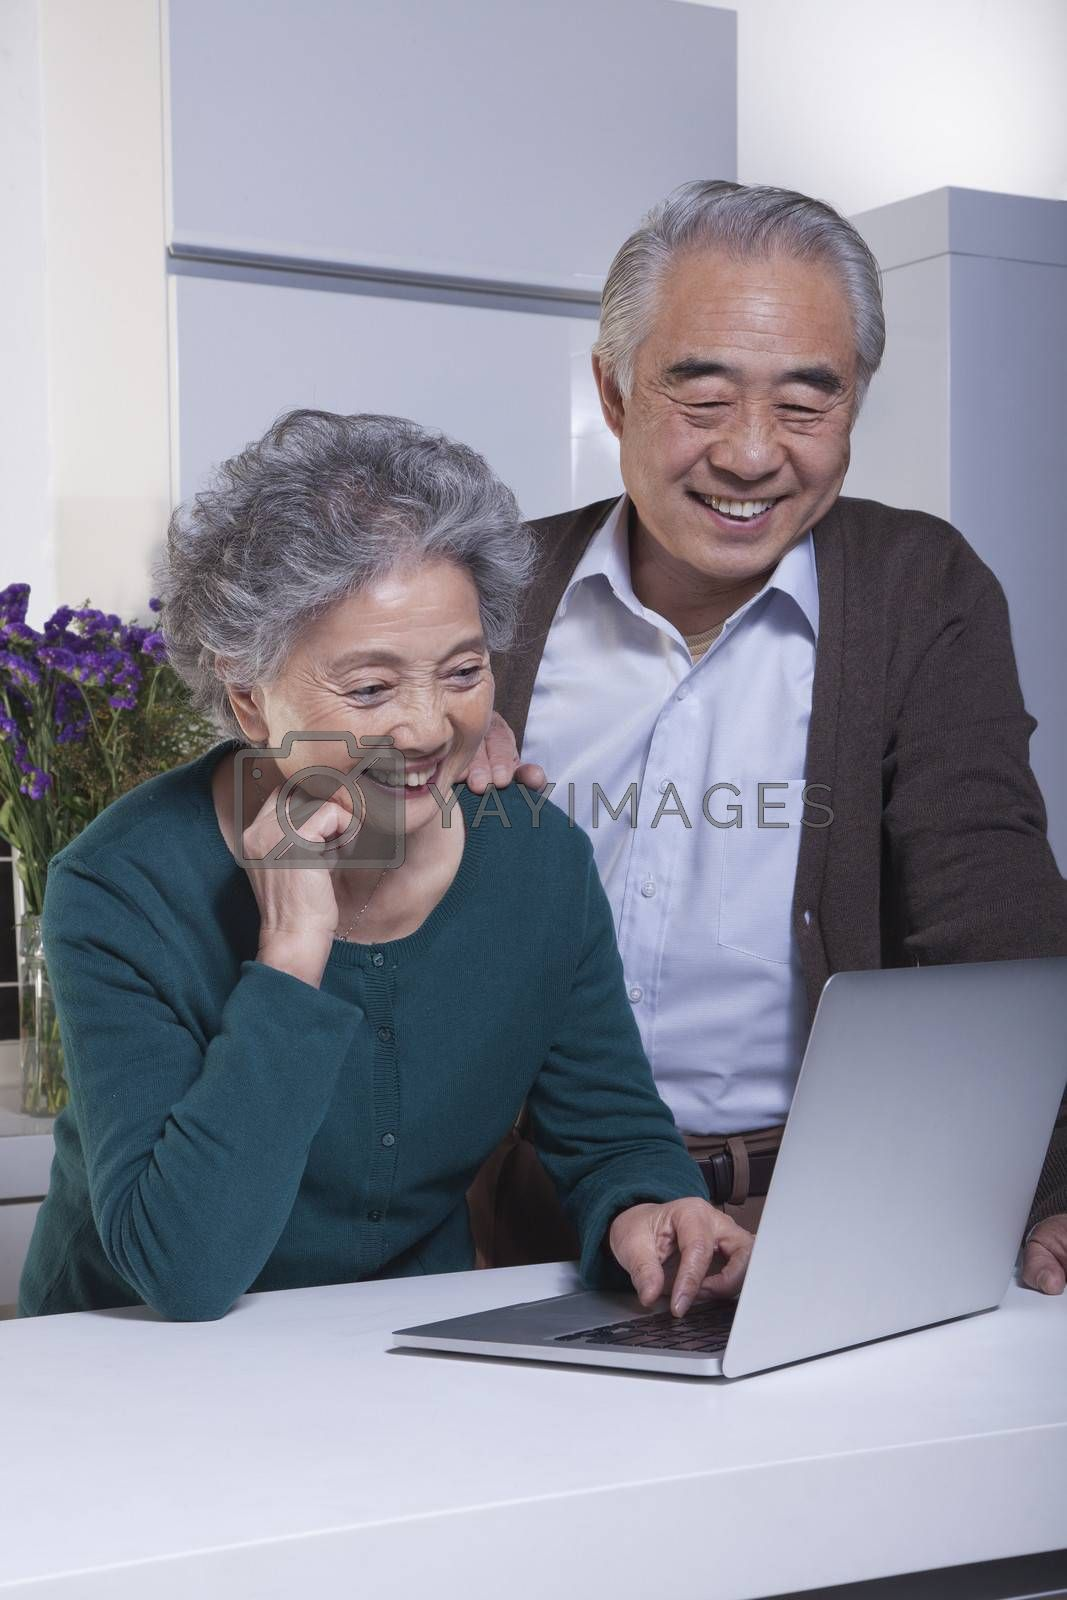 Mature Couple Looking at Laptop in the Kitchen